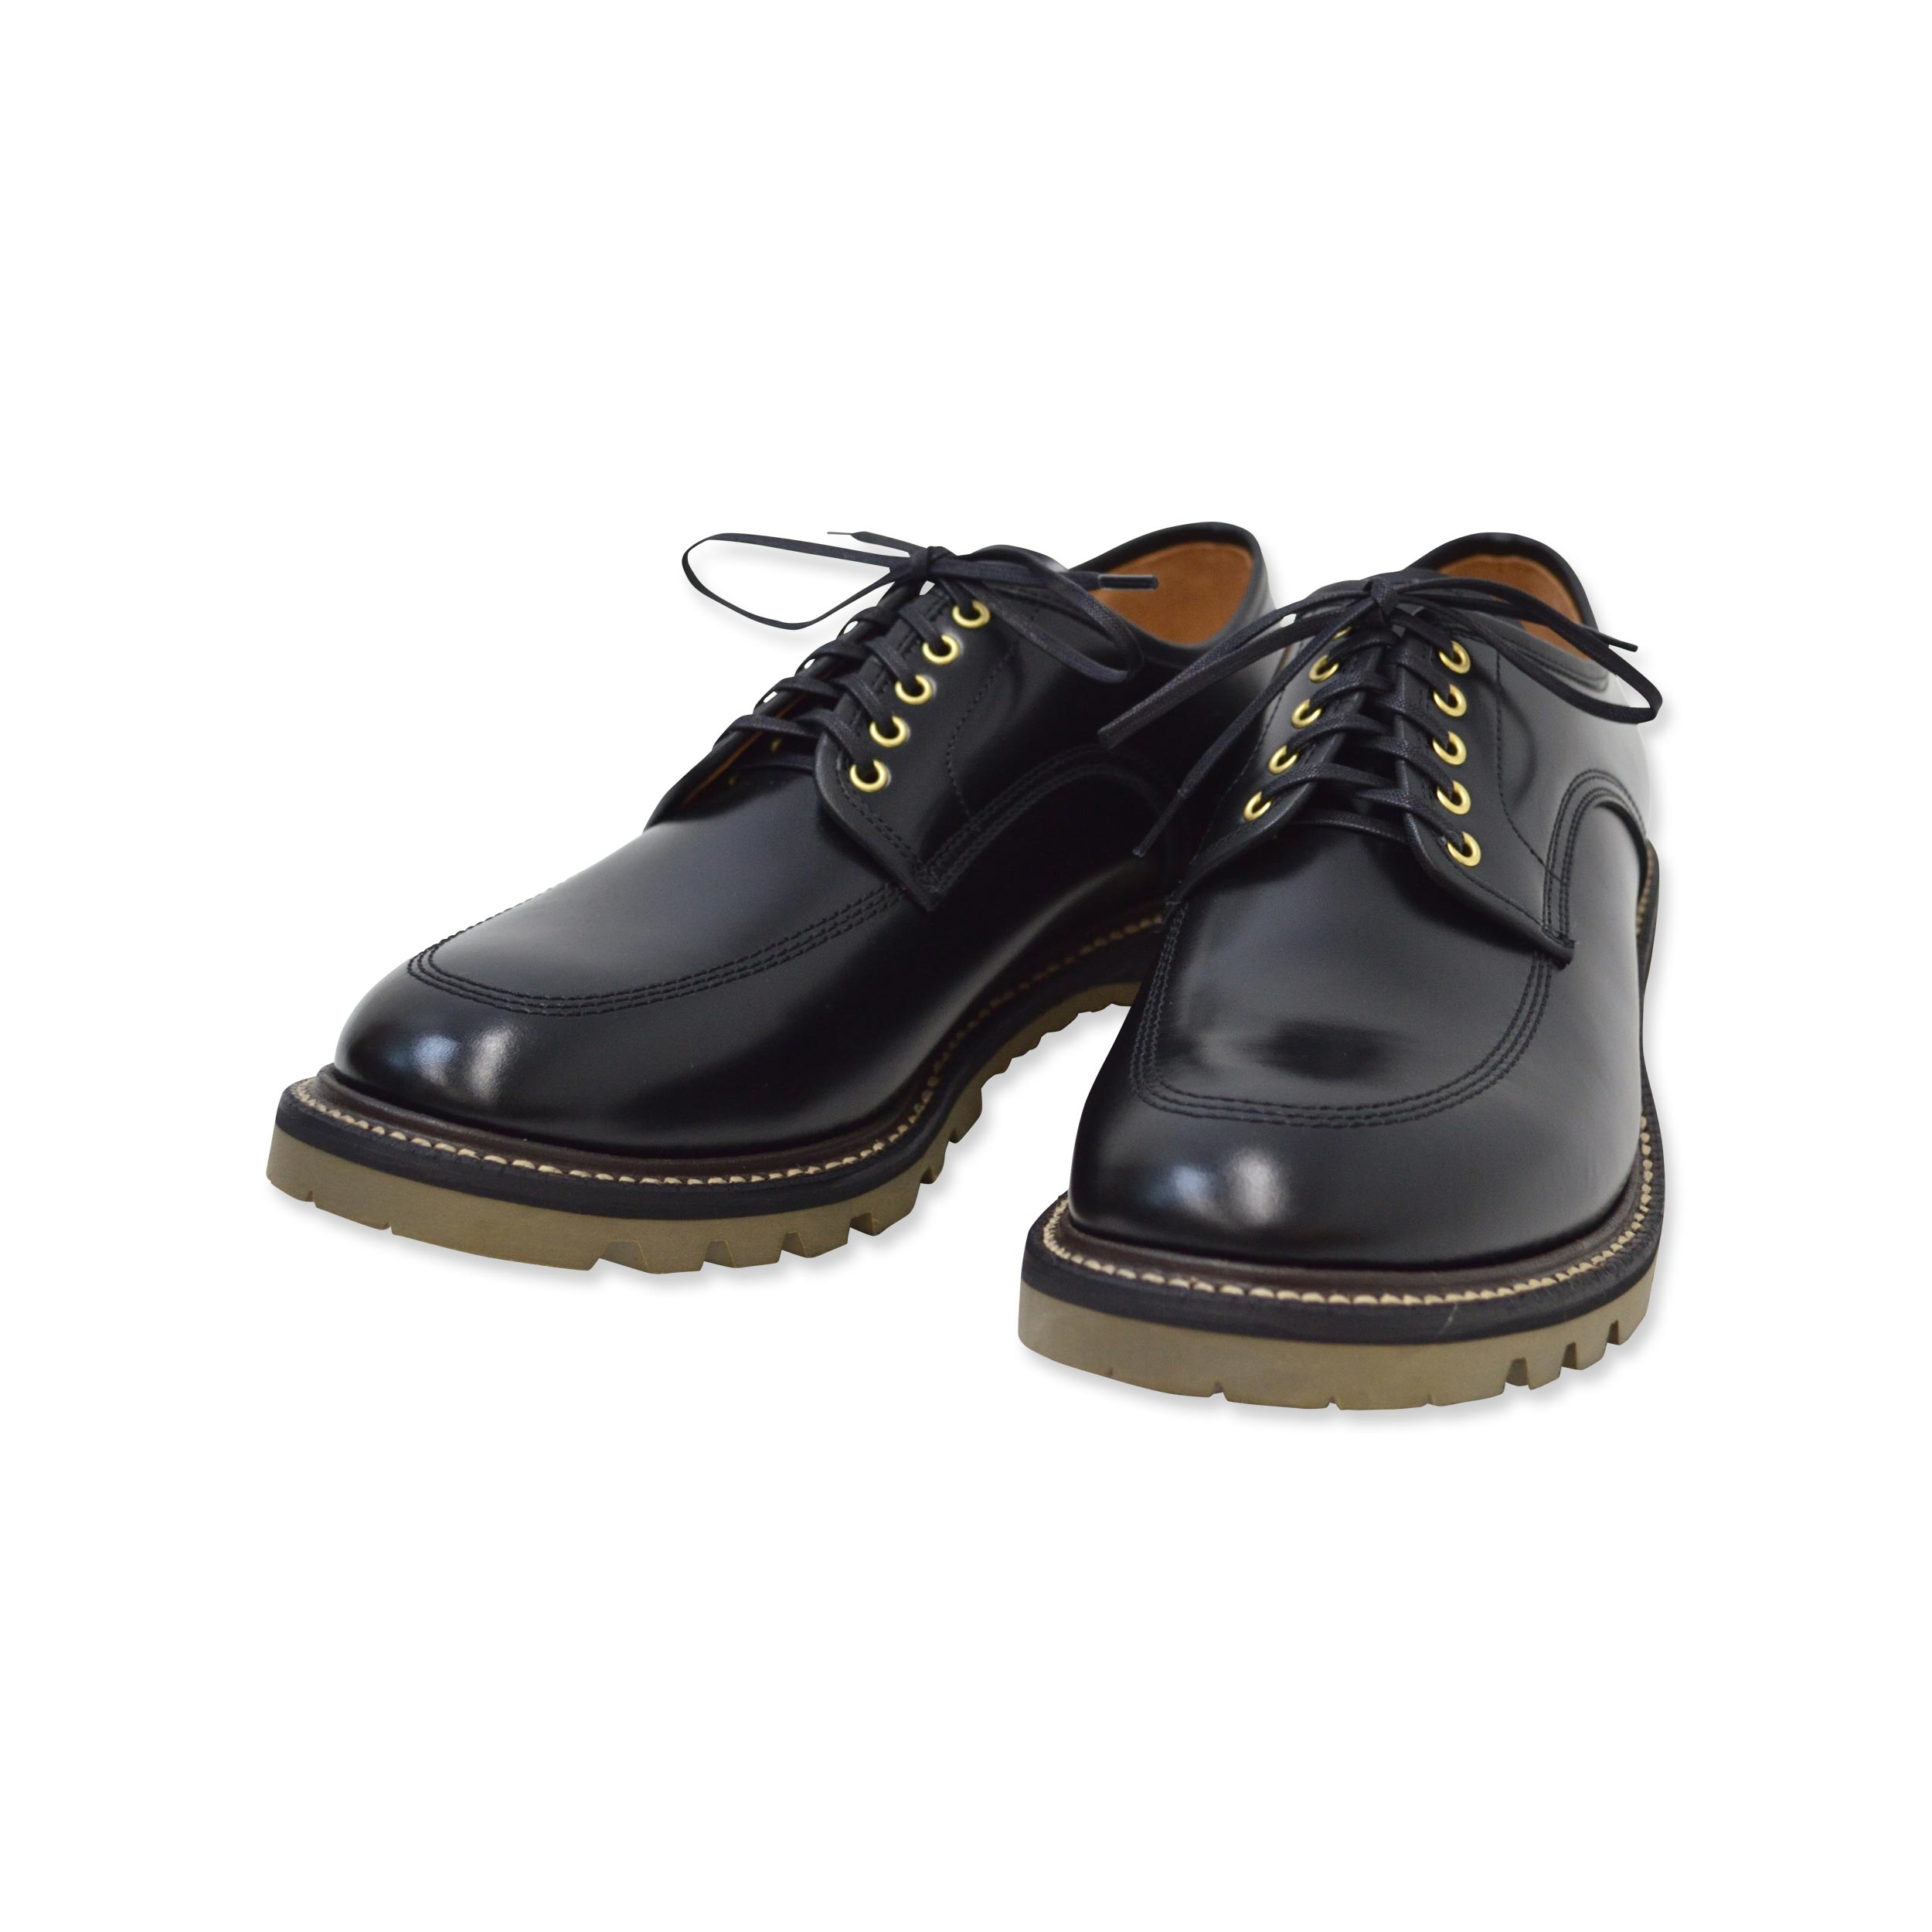 5 eye work moc toe blucher oxford